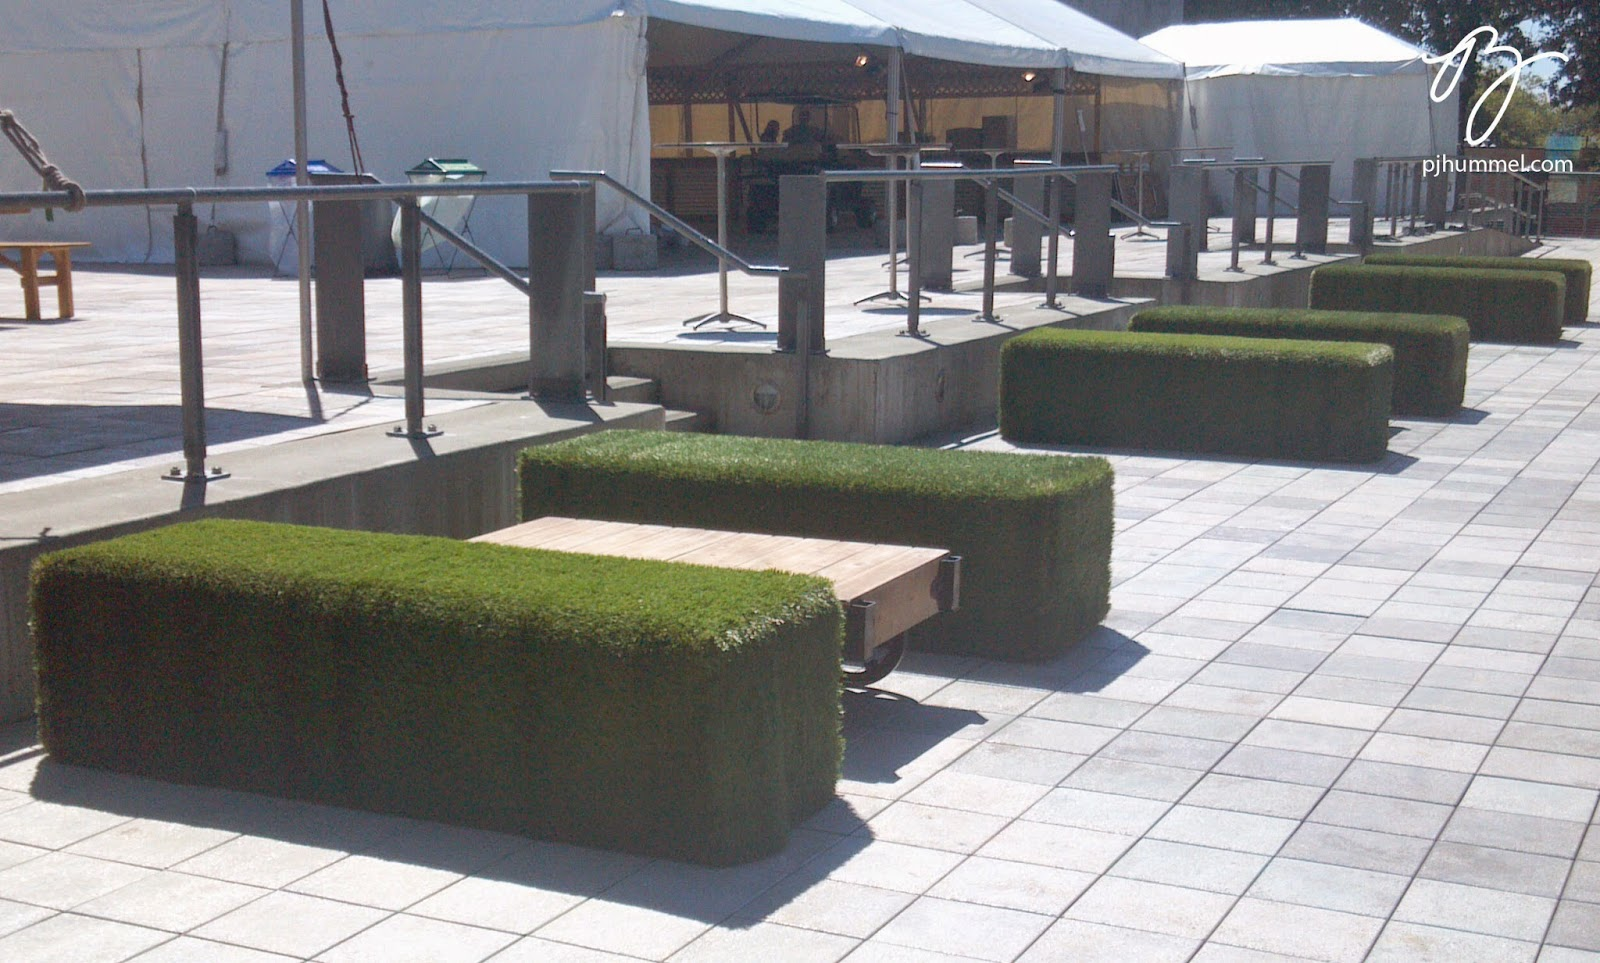 Pj hummel and company inc pj hummel grass furniture line for Furniture rental seattle